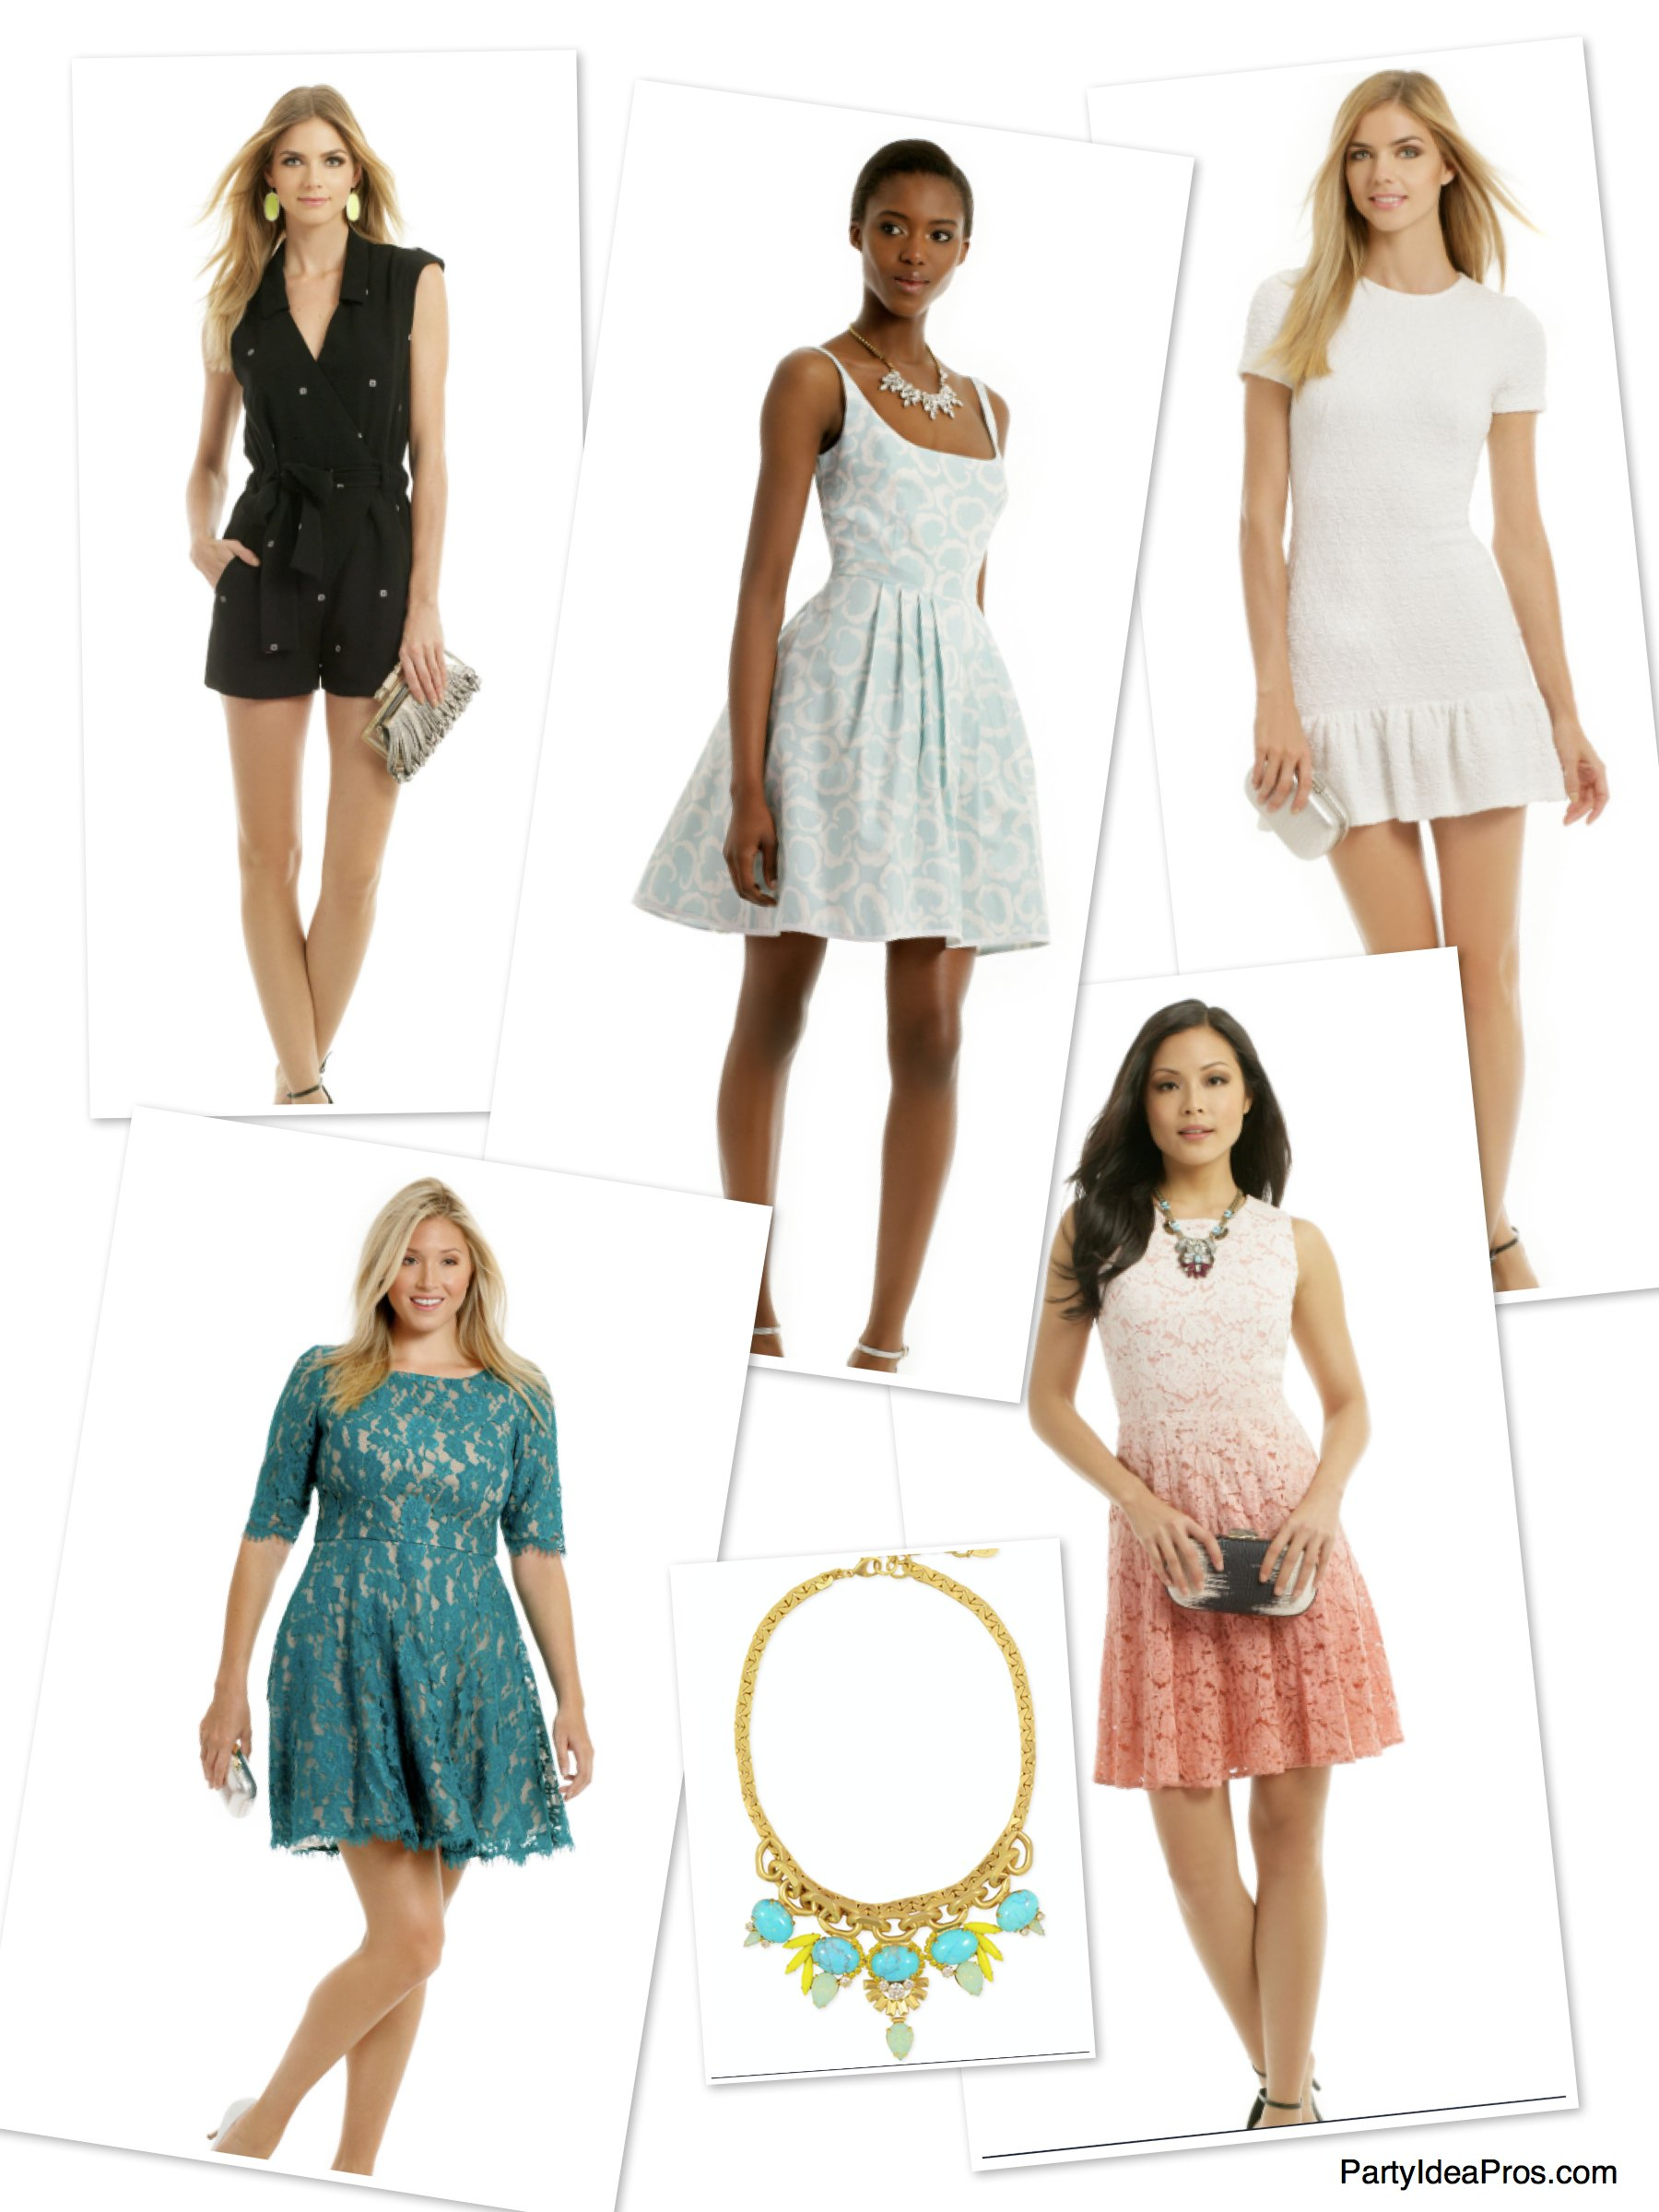 Shine Through Sorority Rush Season with Rent the Runway